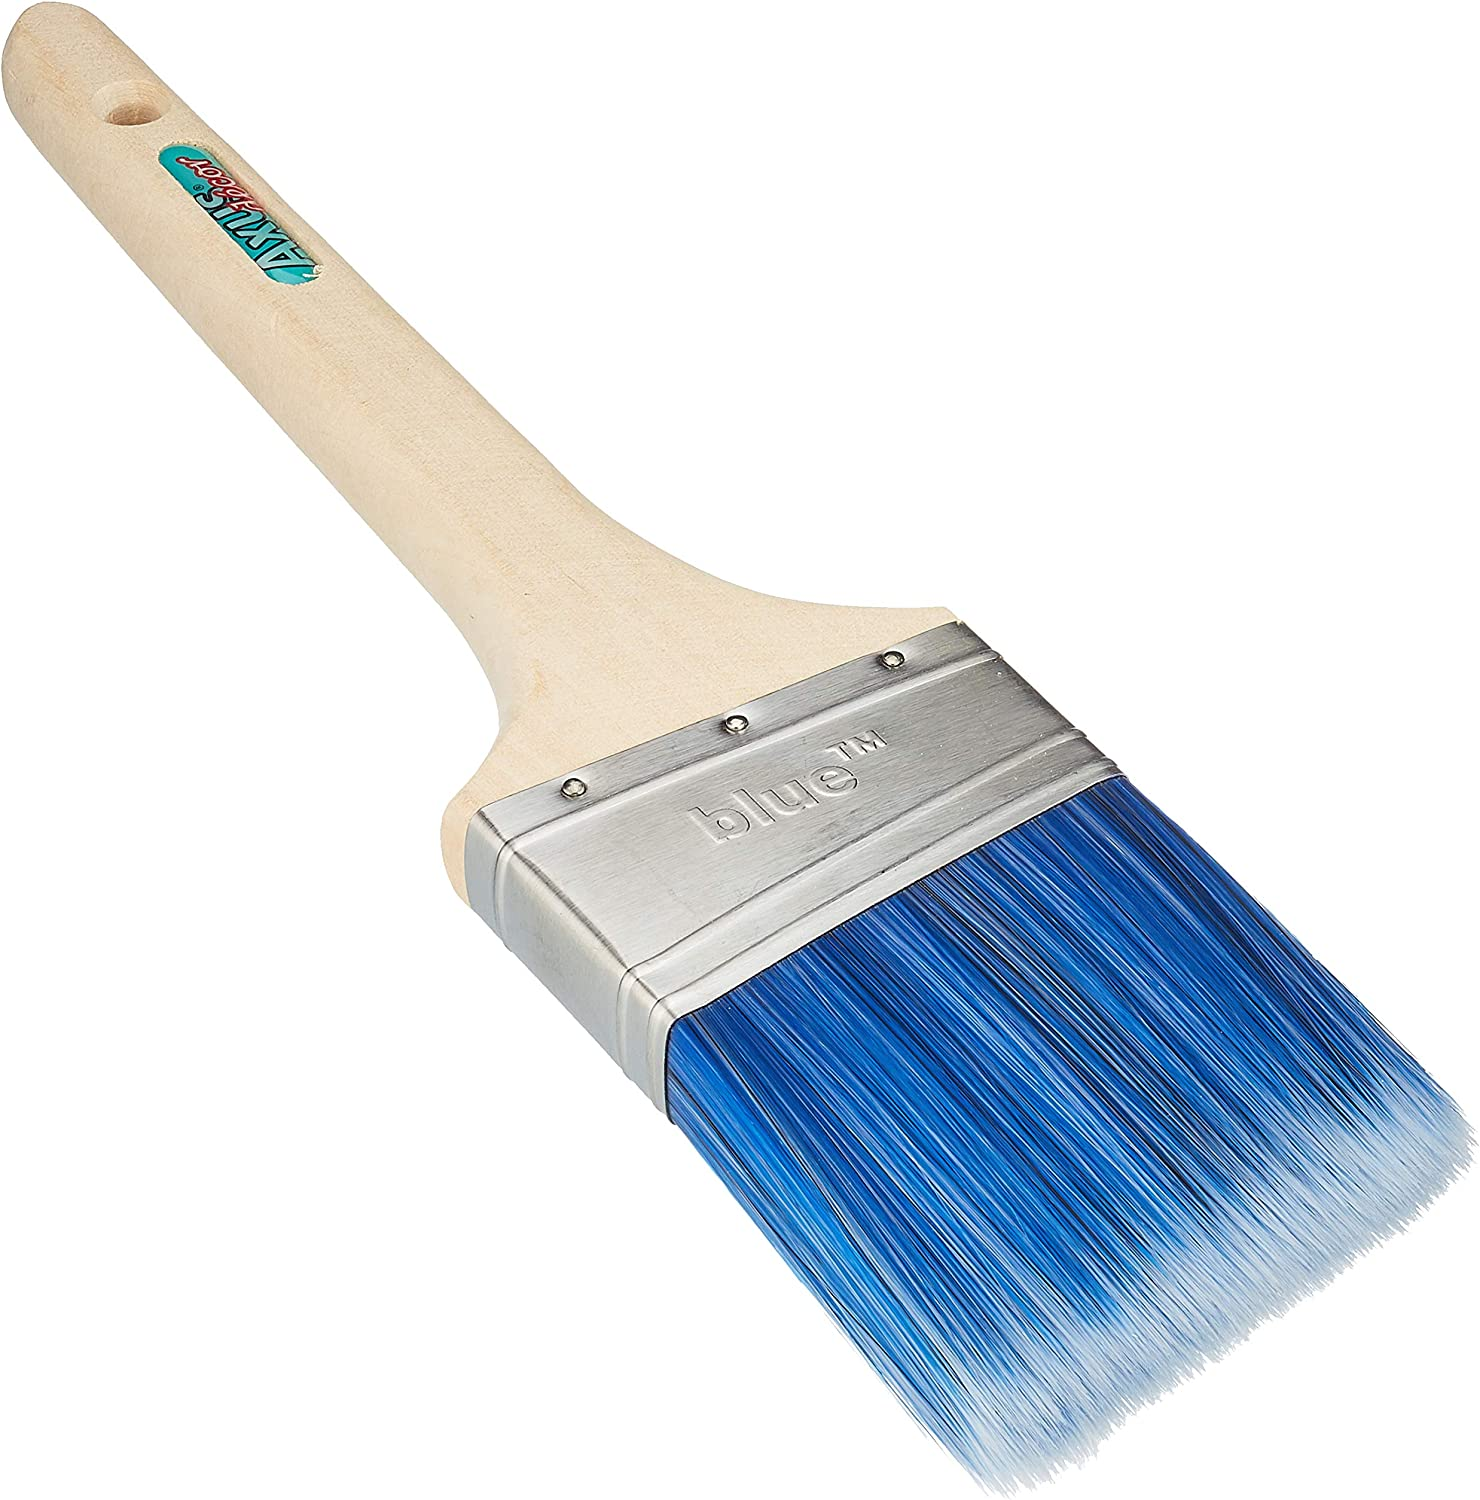 "Axus Decor Blue Pro-Brush 3 Piece Synthetic Paint Brush Set 1 x 1/"" 1.5/"" and 2/"""